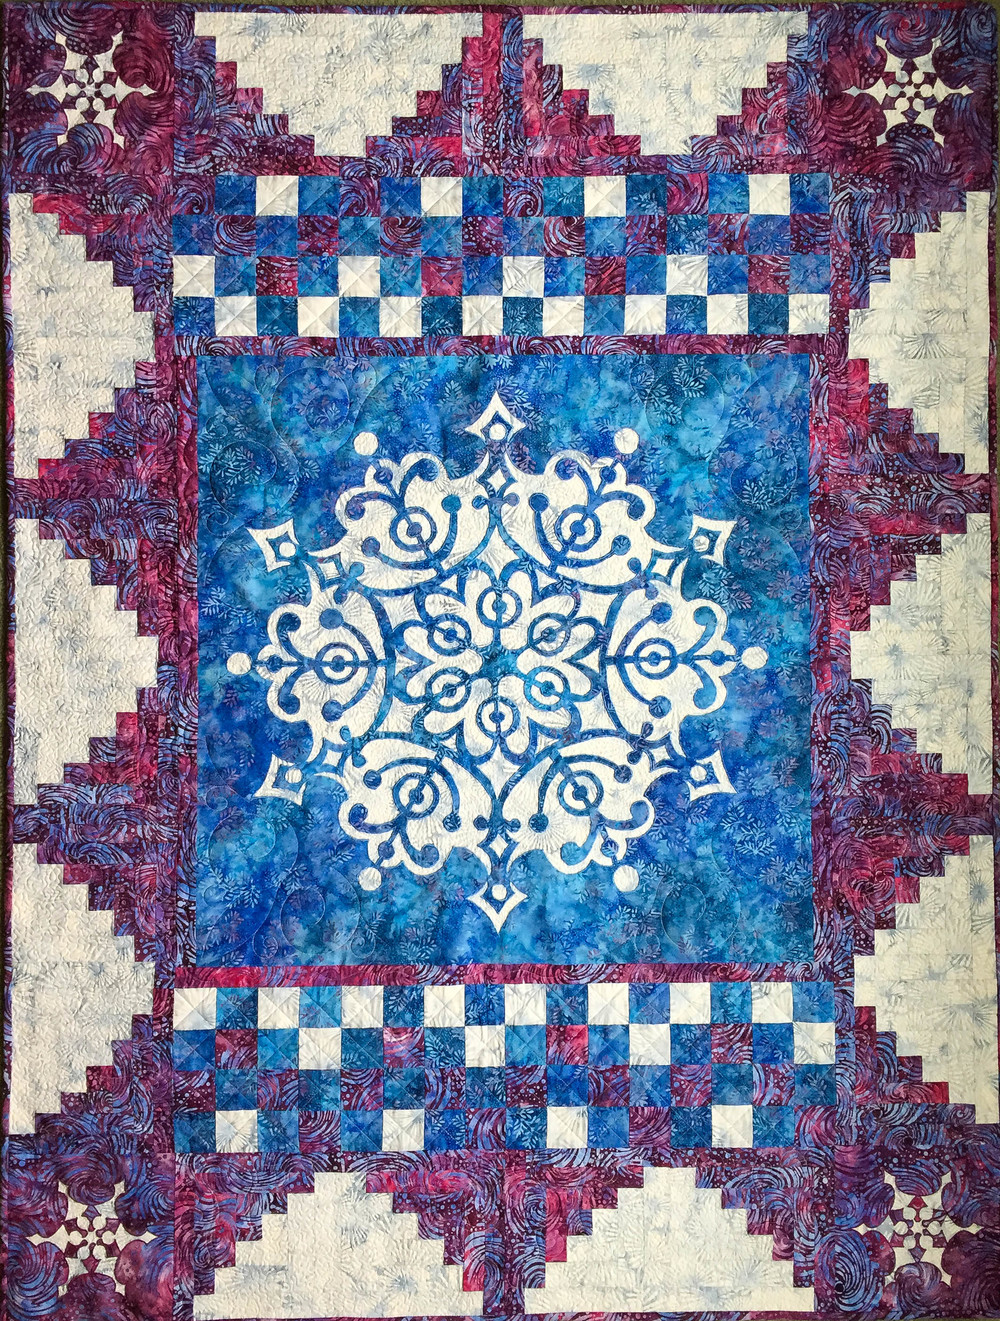 Frosty Frozen Wonder Quilt. Made with  Frozen Wonder Medallion VIII and Frosty Quilt Expansion pattern.